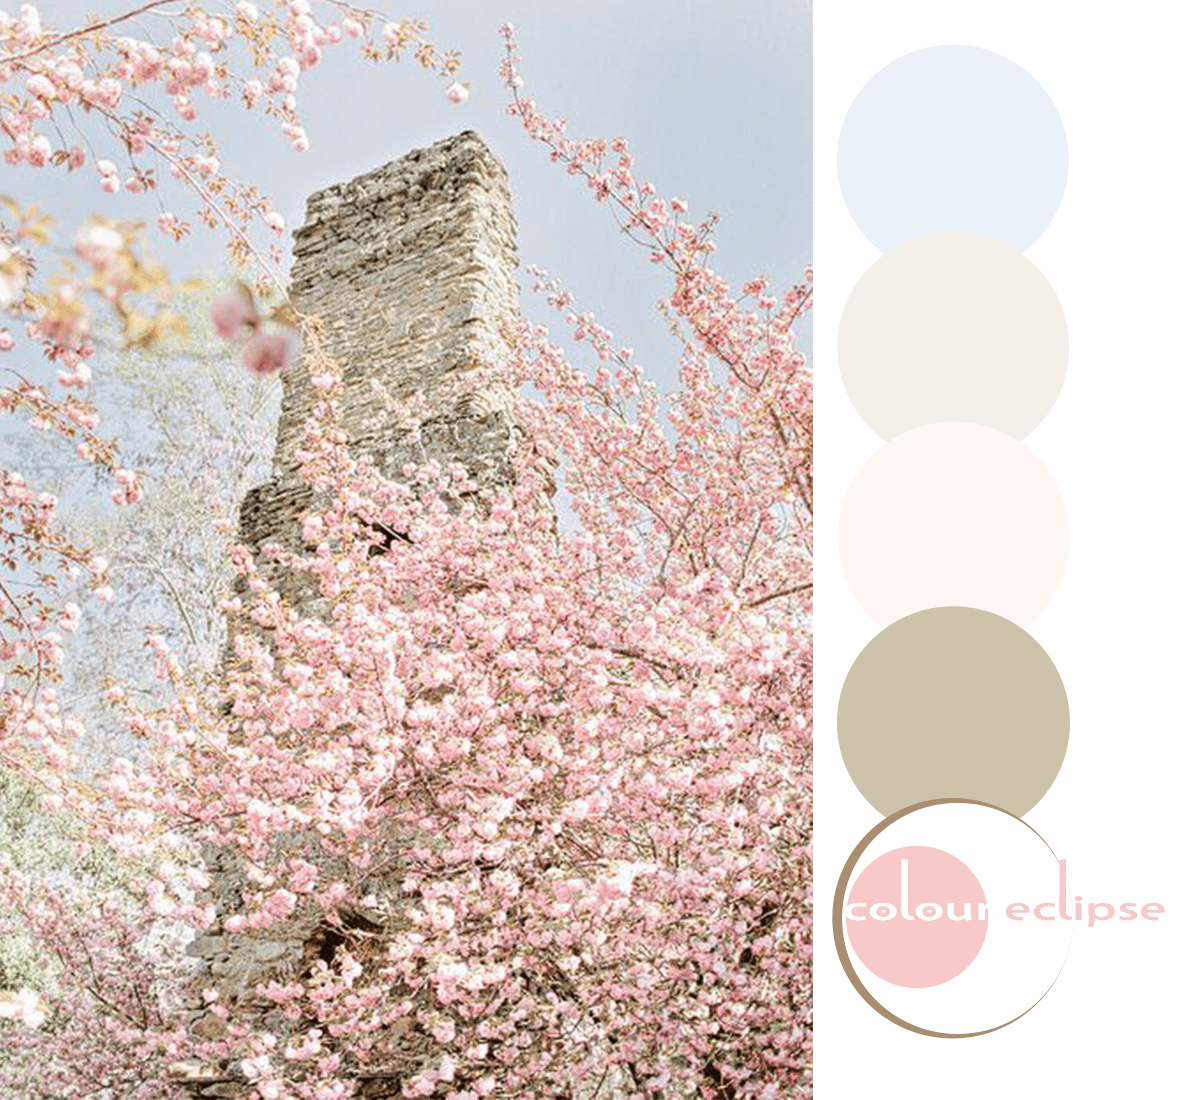 rose quartz and serenity color palette